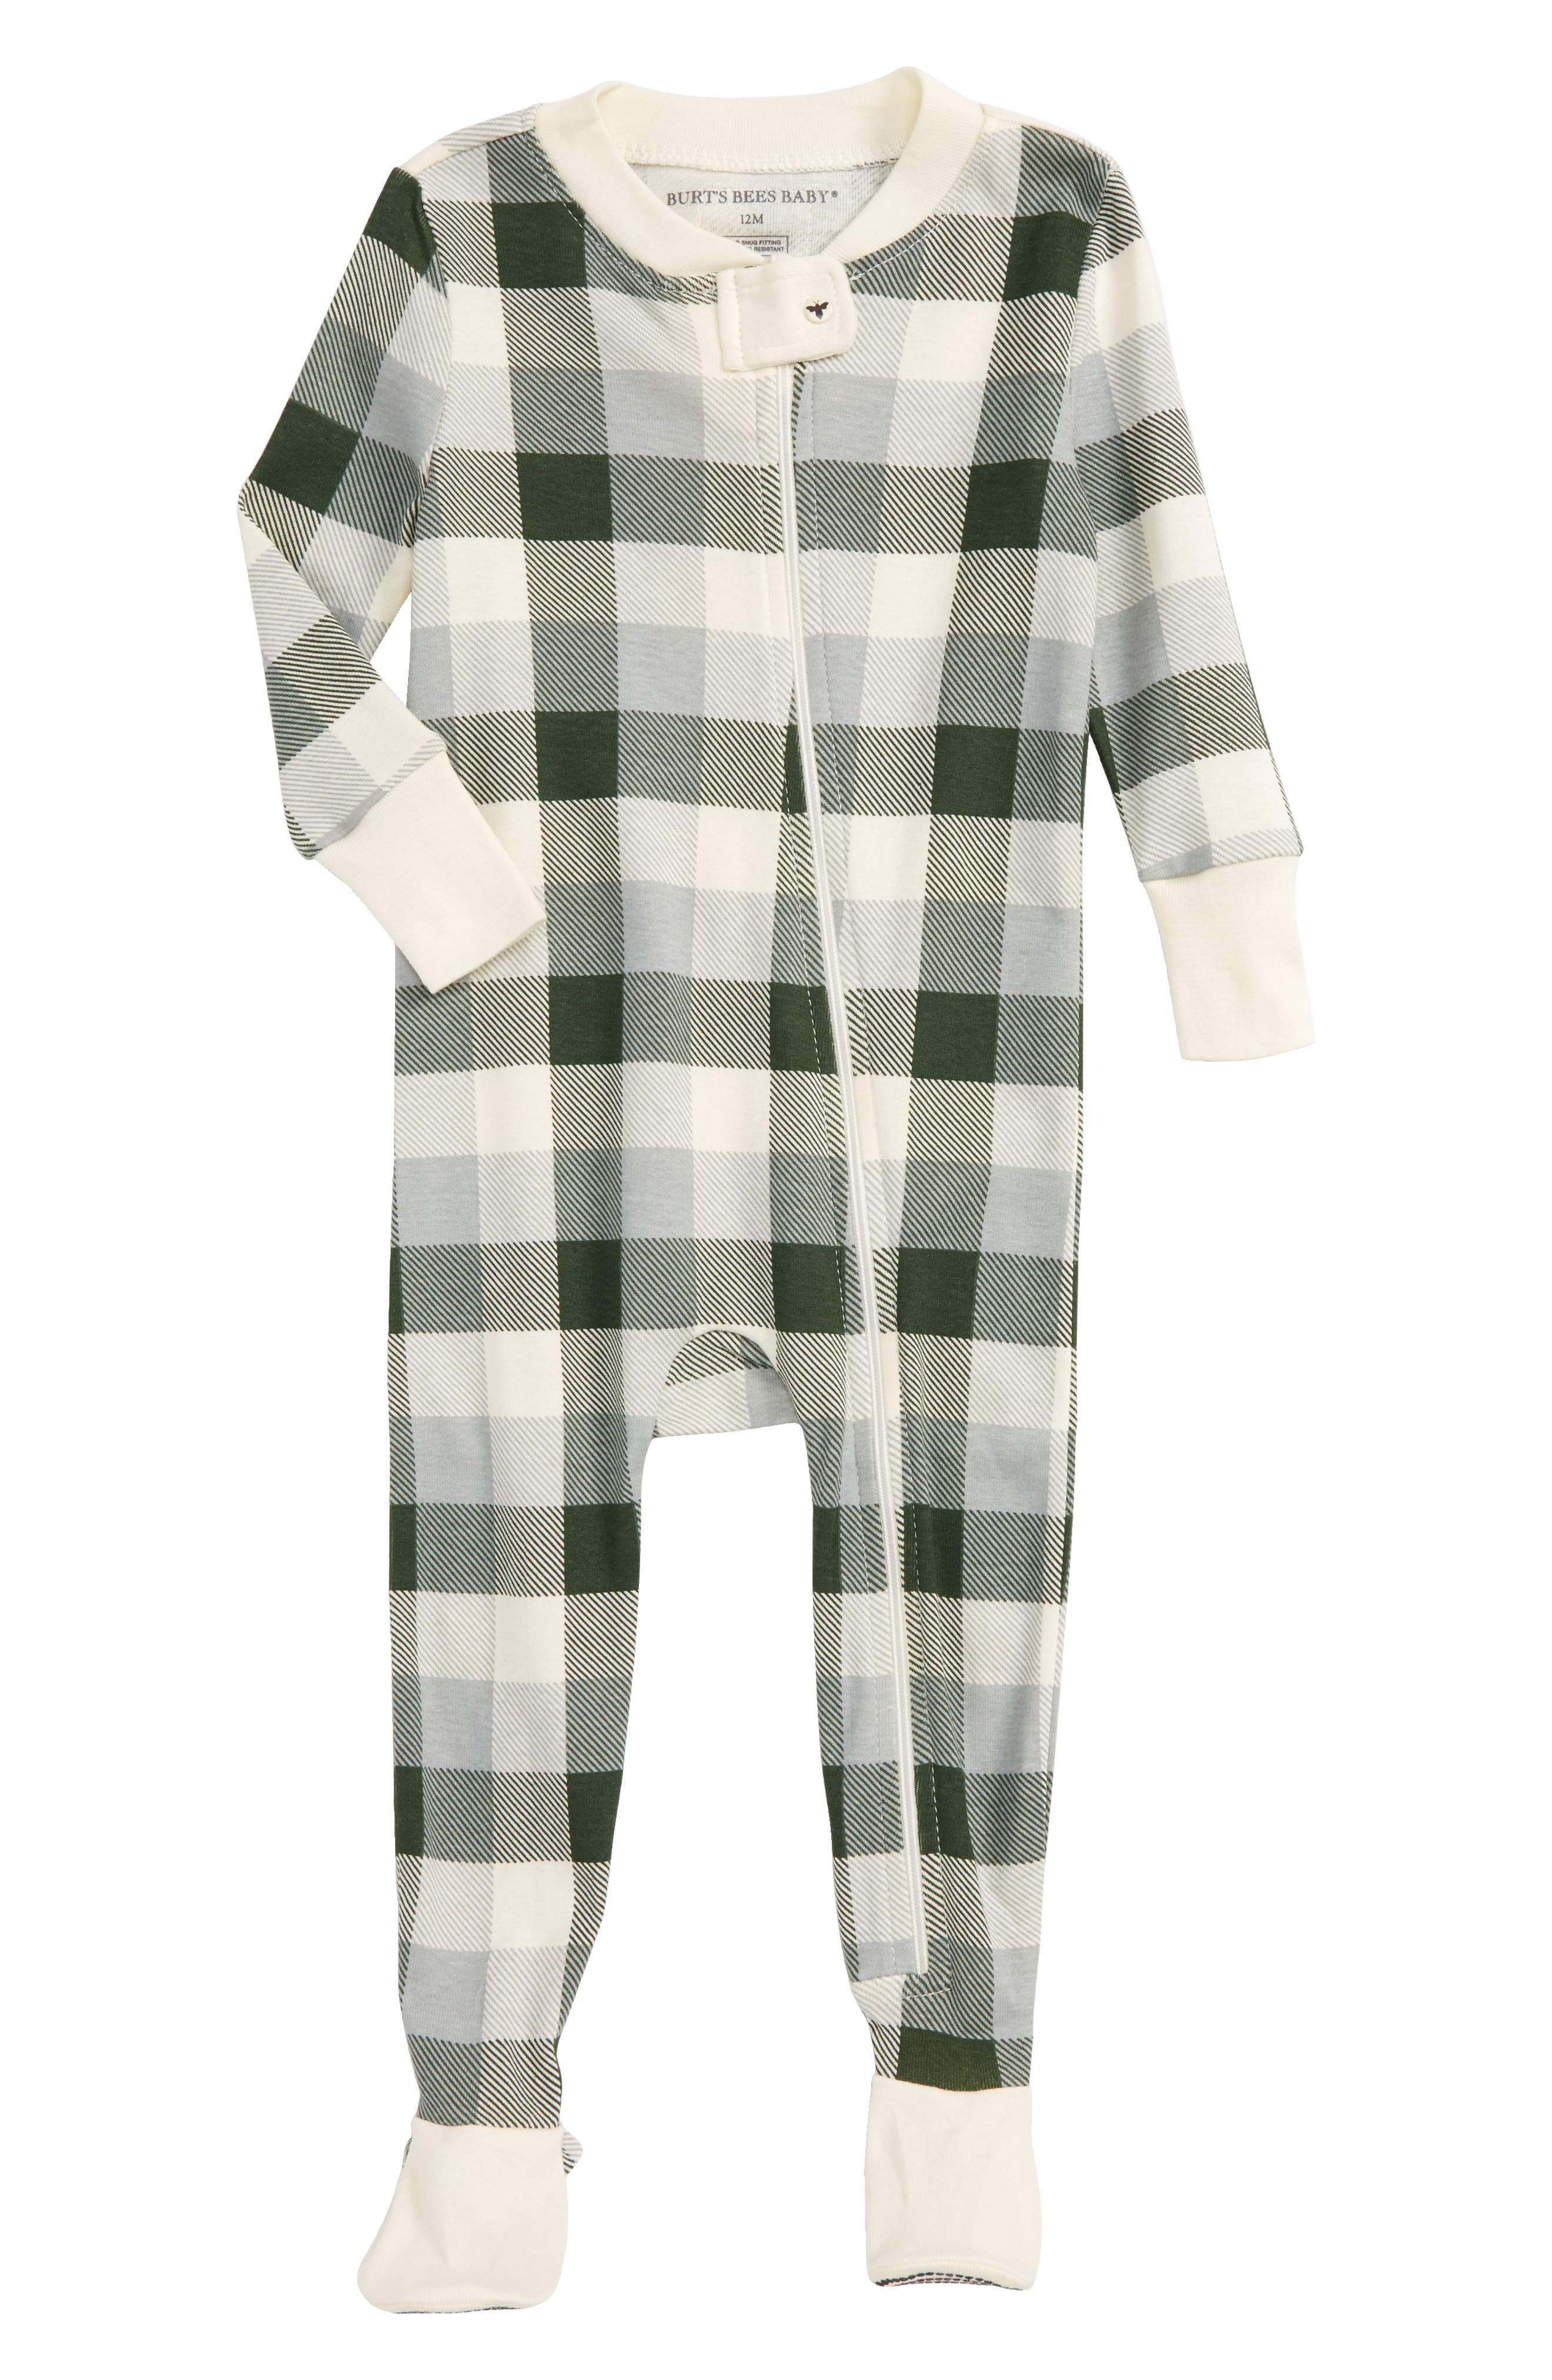 BURT'S BEES BABY,                             Buffalo Check Fitted One-Piece Pajamas,                             Main thumbnail 1, color,                             300